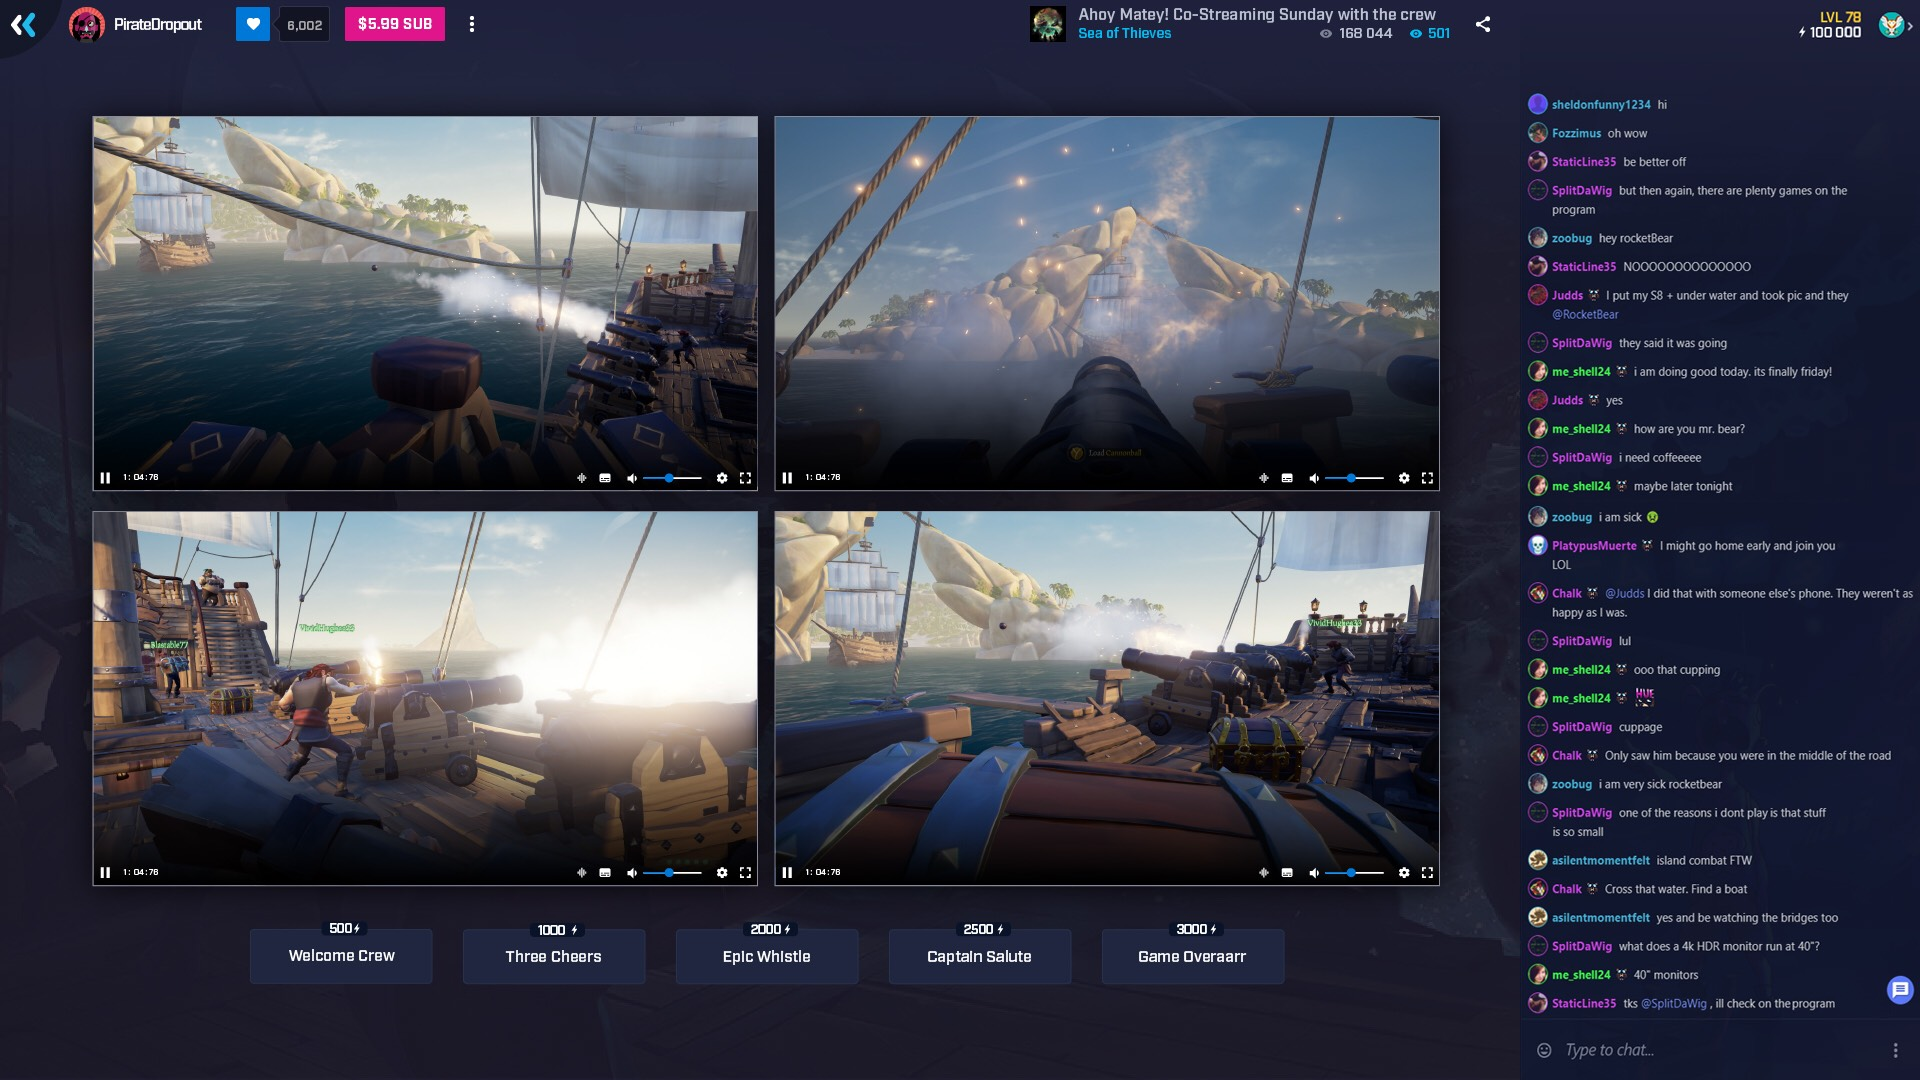 Microsoft renames Beam live-streaming platform to 'Mixer' and adds new features